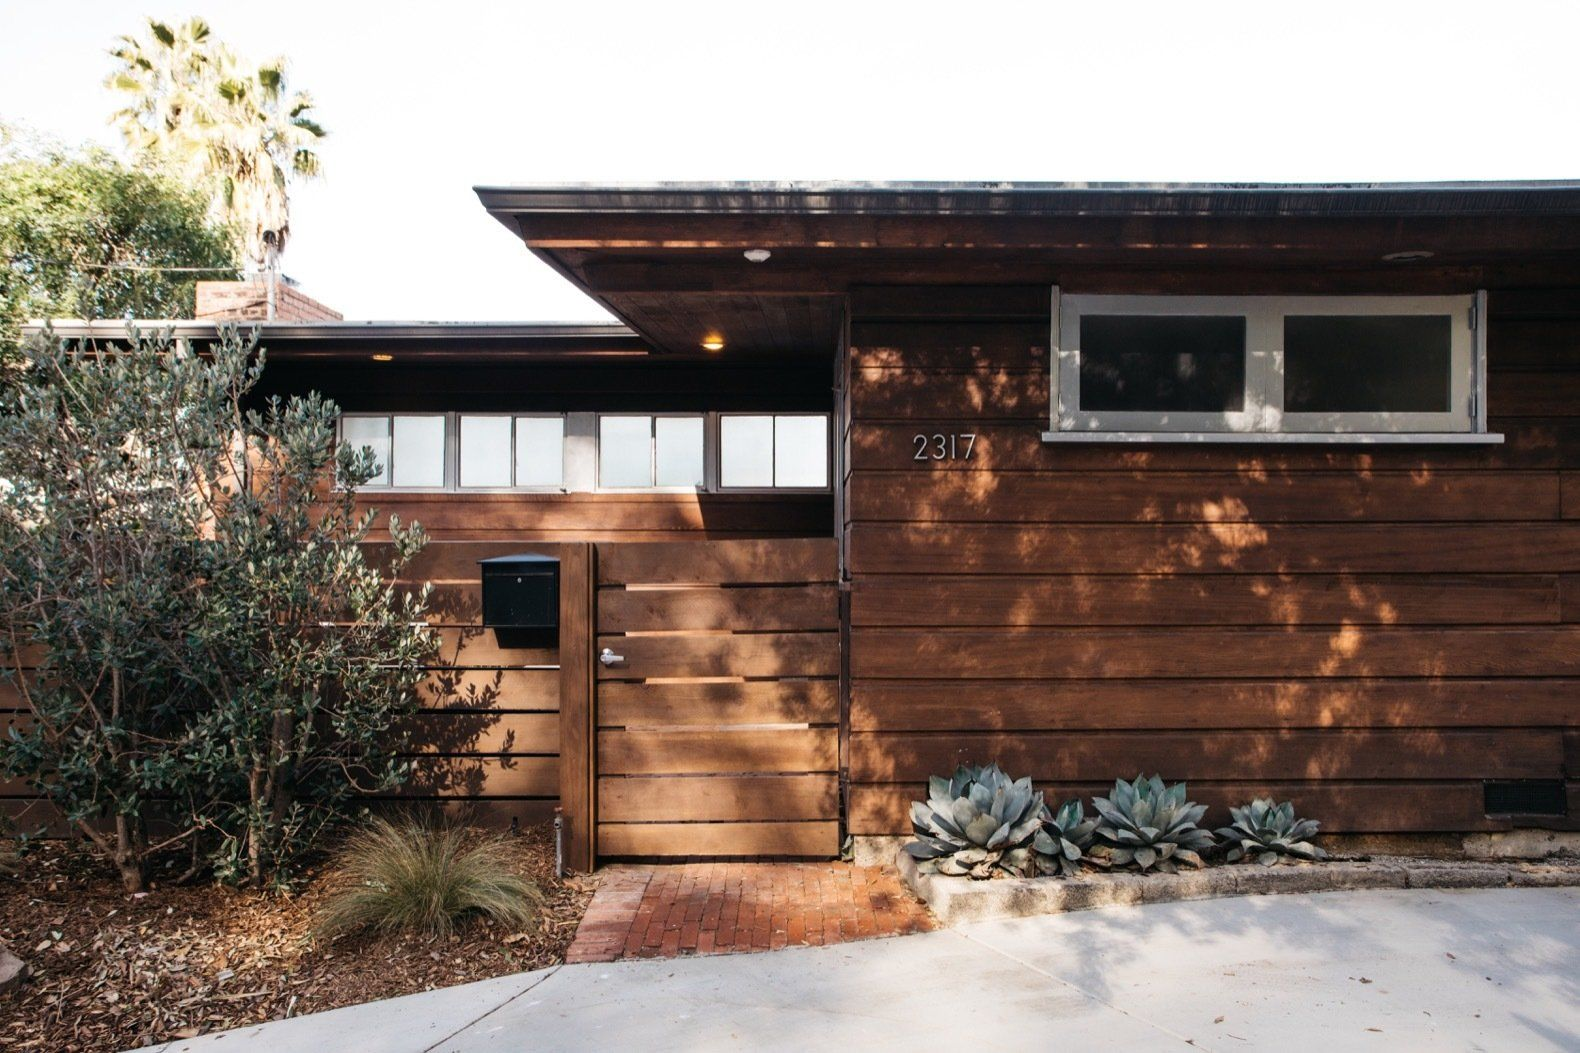 19 Laudable Midcentury Modern Renovations In Los Angeles In 2020 Modern Renovation Architecture House Exterior Lighting